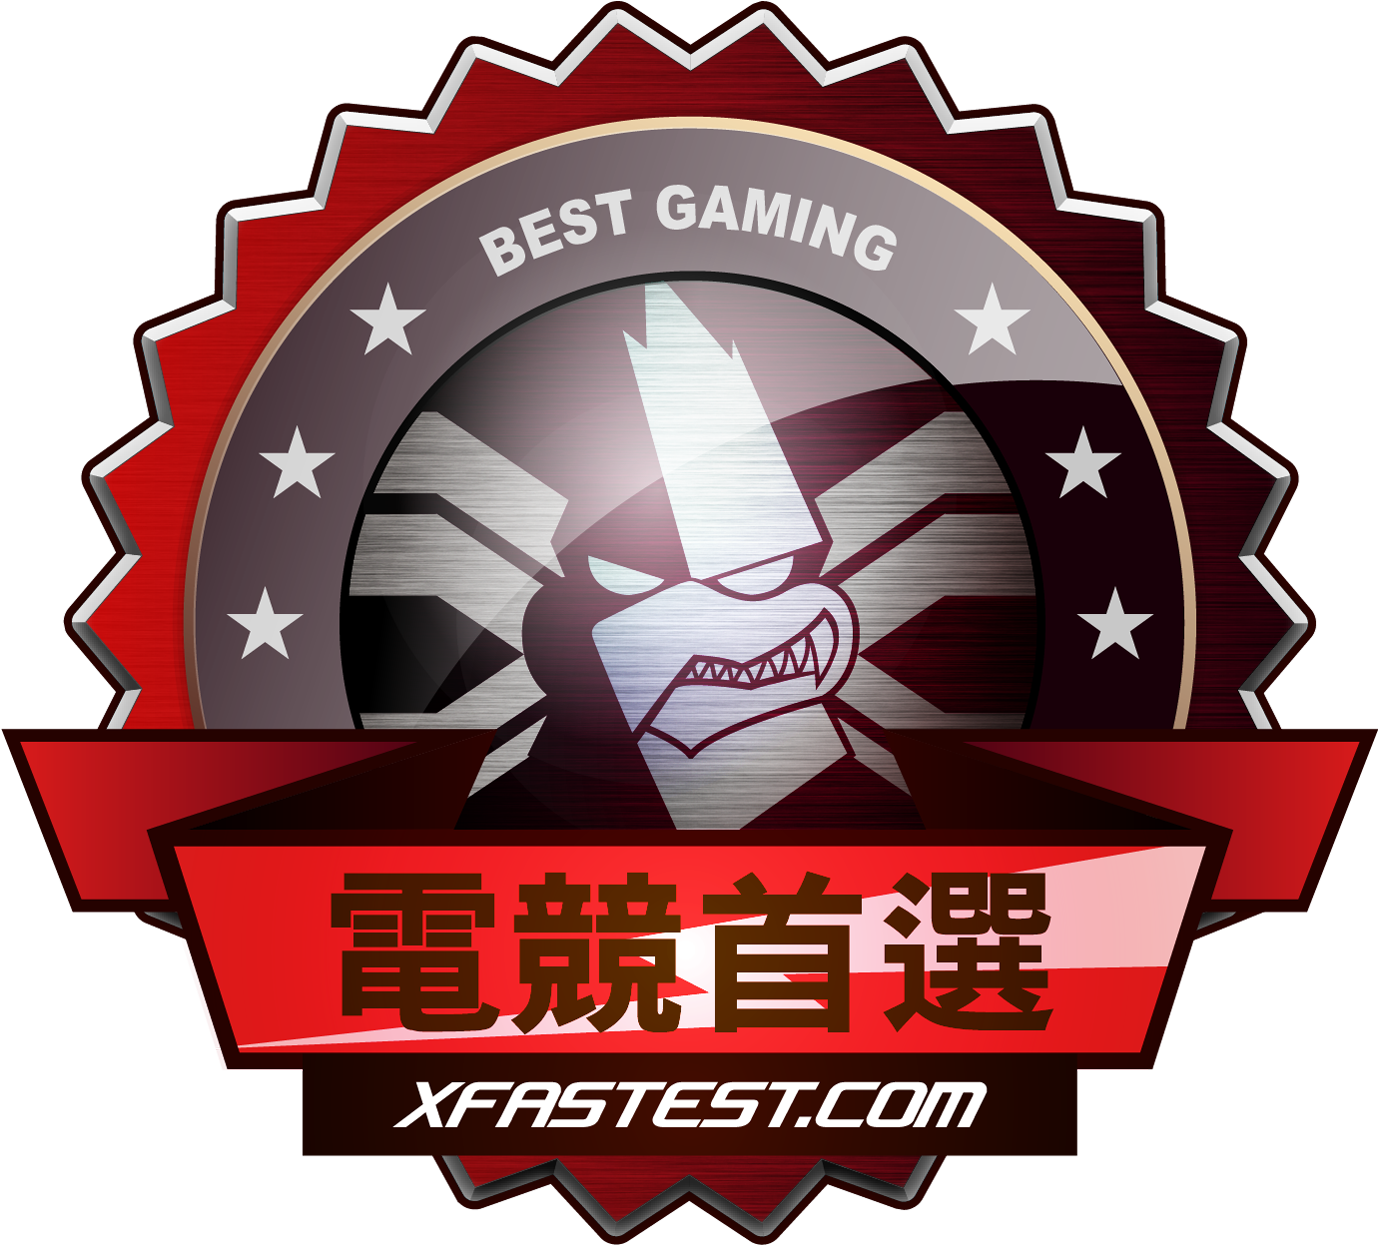 XF-Best Gaming